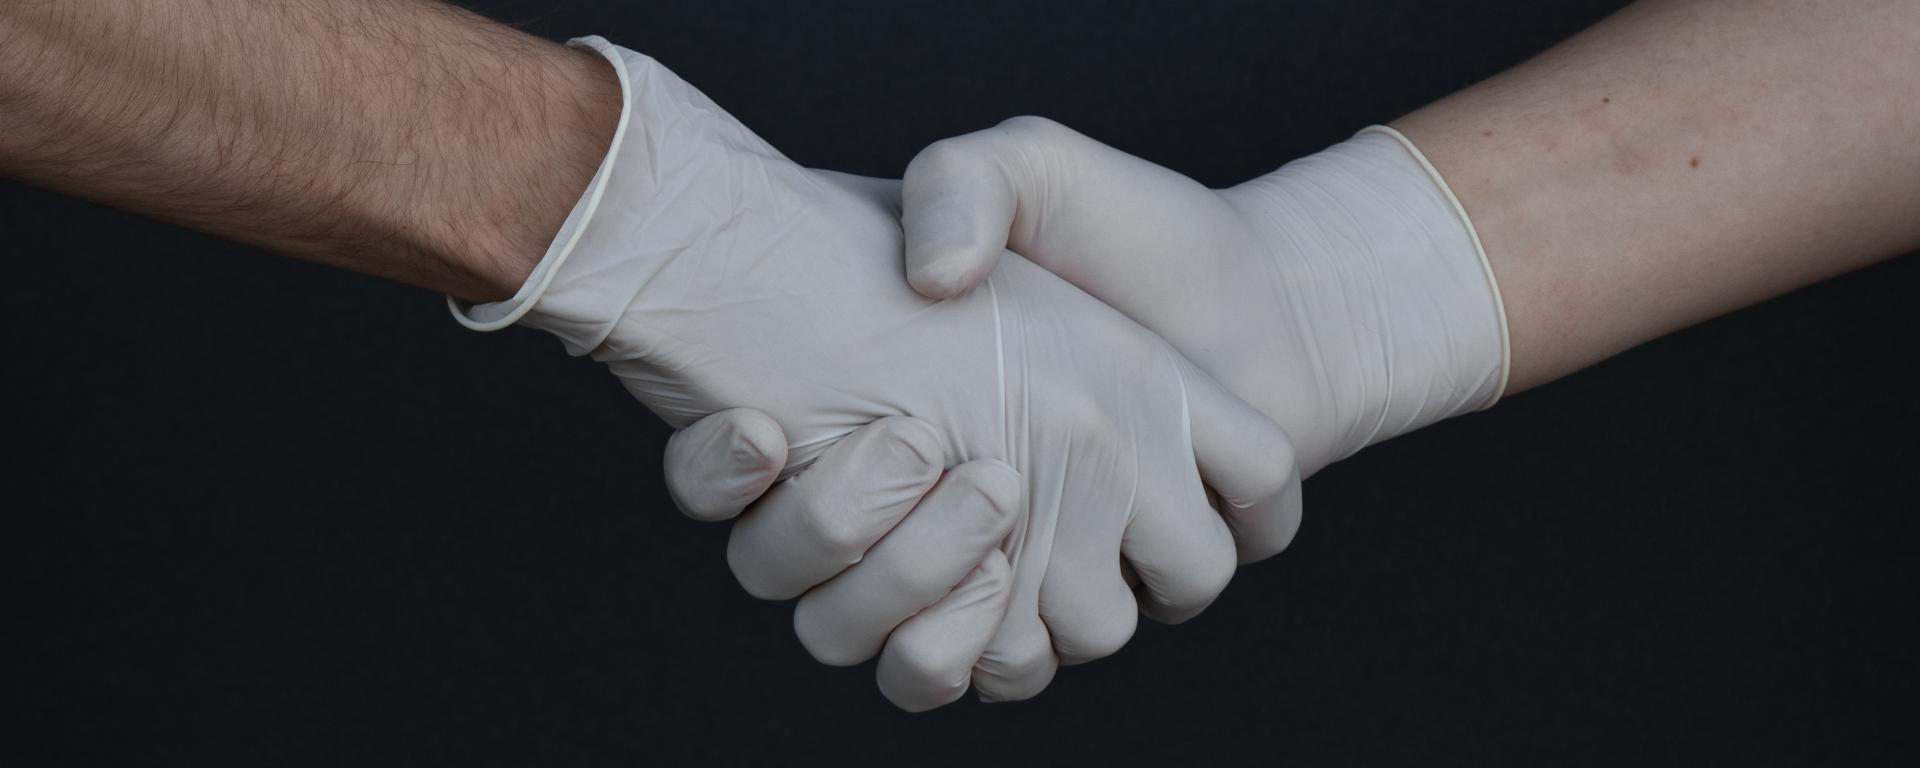 People Shaking Hands in Latex Gloves by Branimir Balogovic